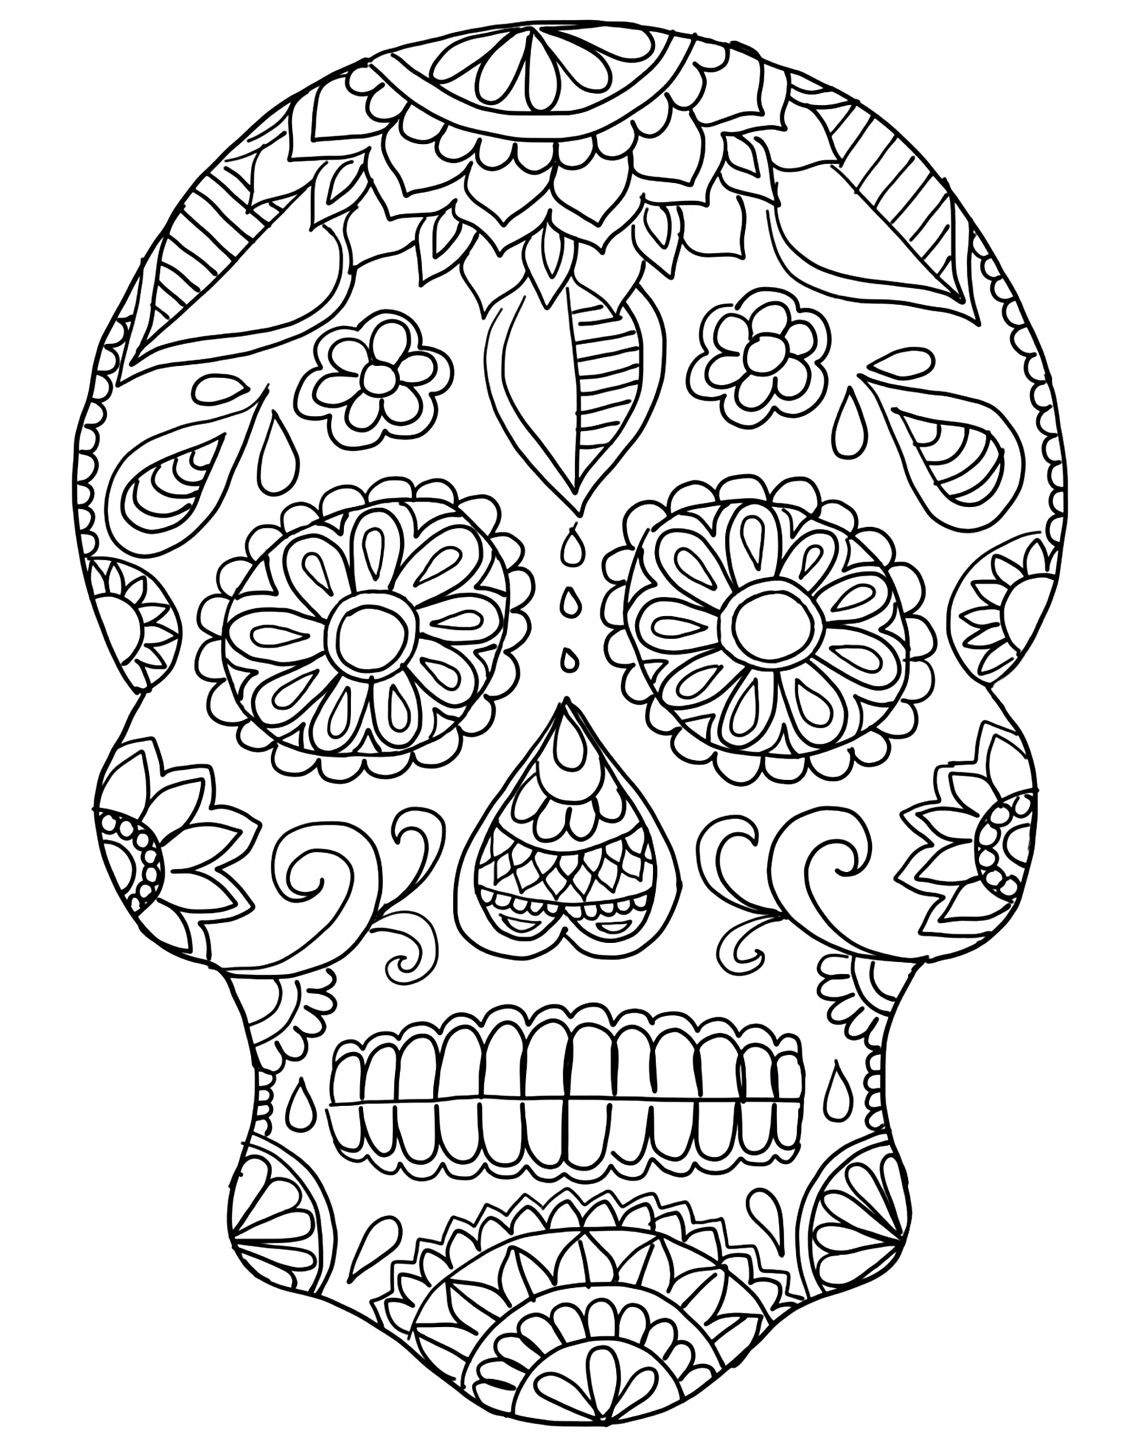 sugar skull coloring pages printable sugar skull drawing easy at getdrawingscom free for pages skull coloring printable sugar